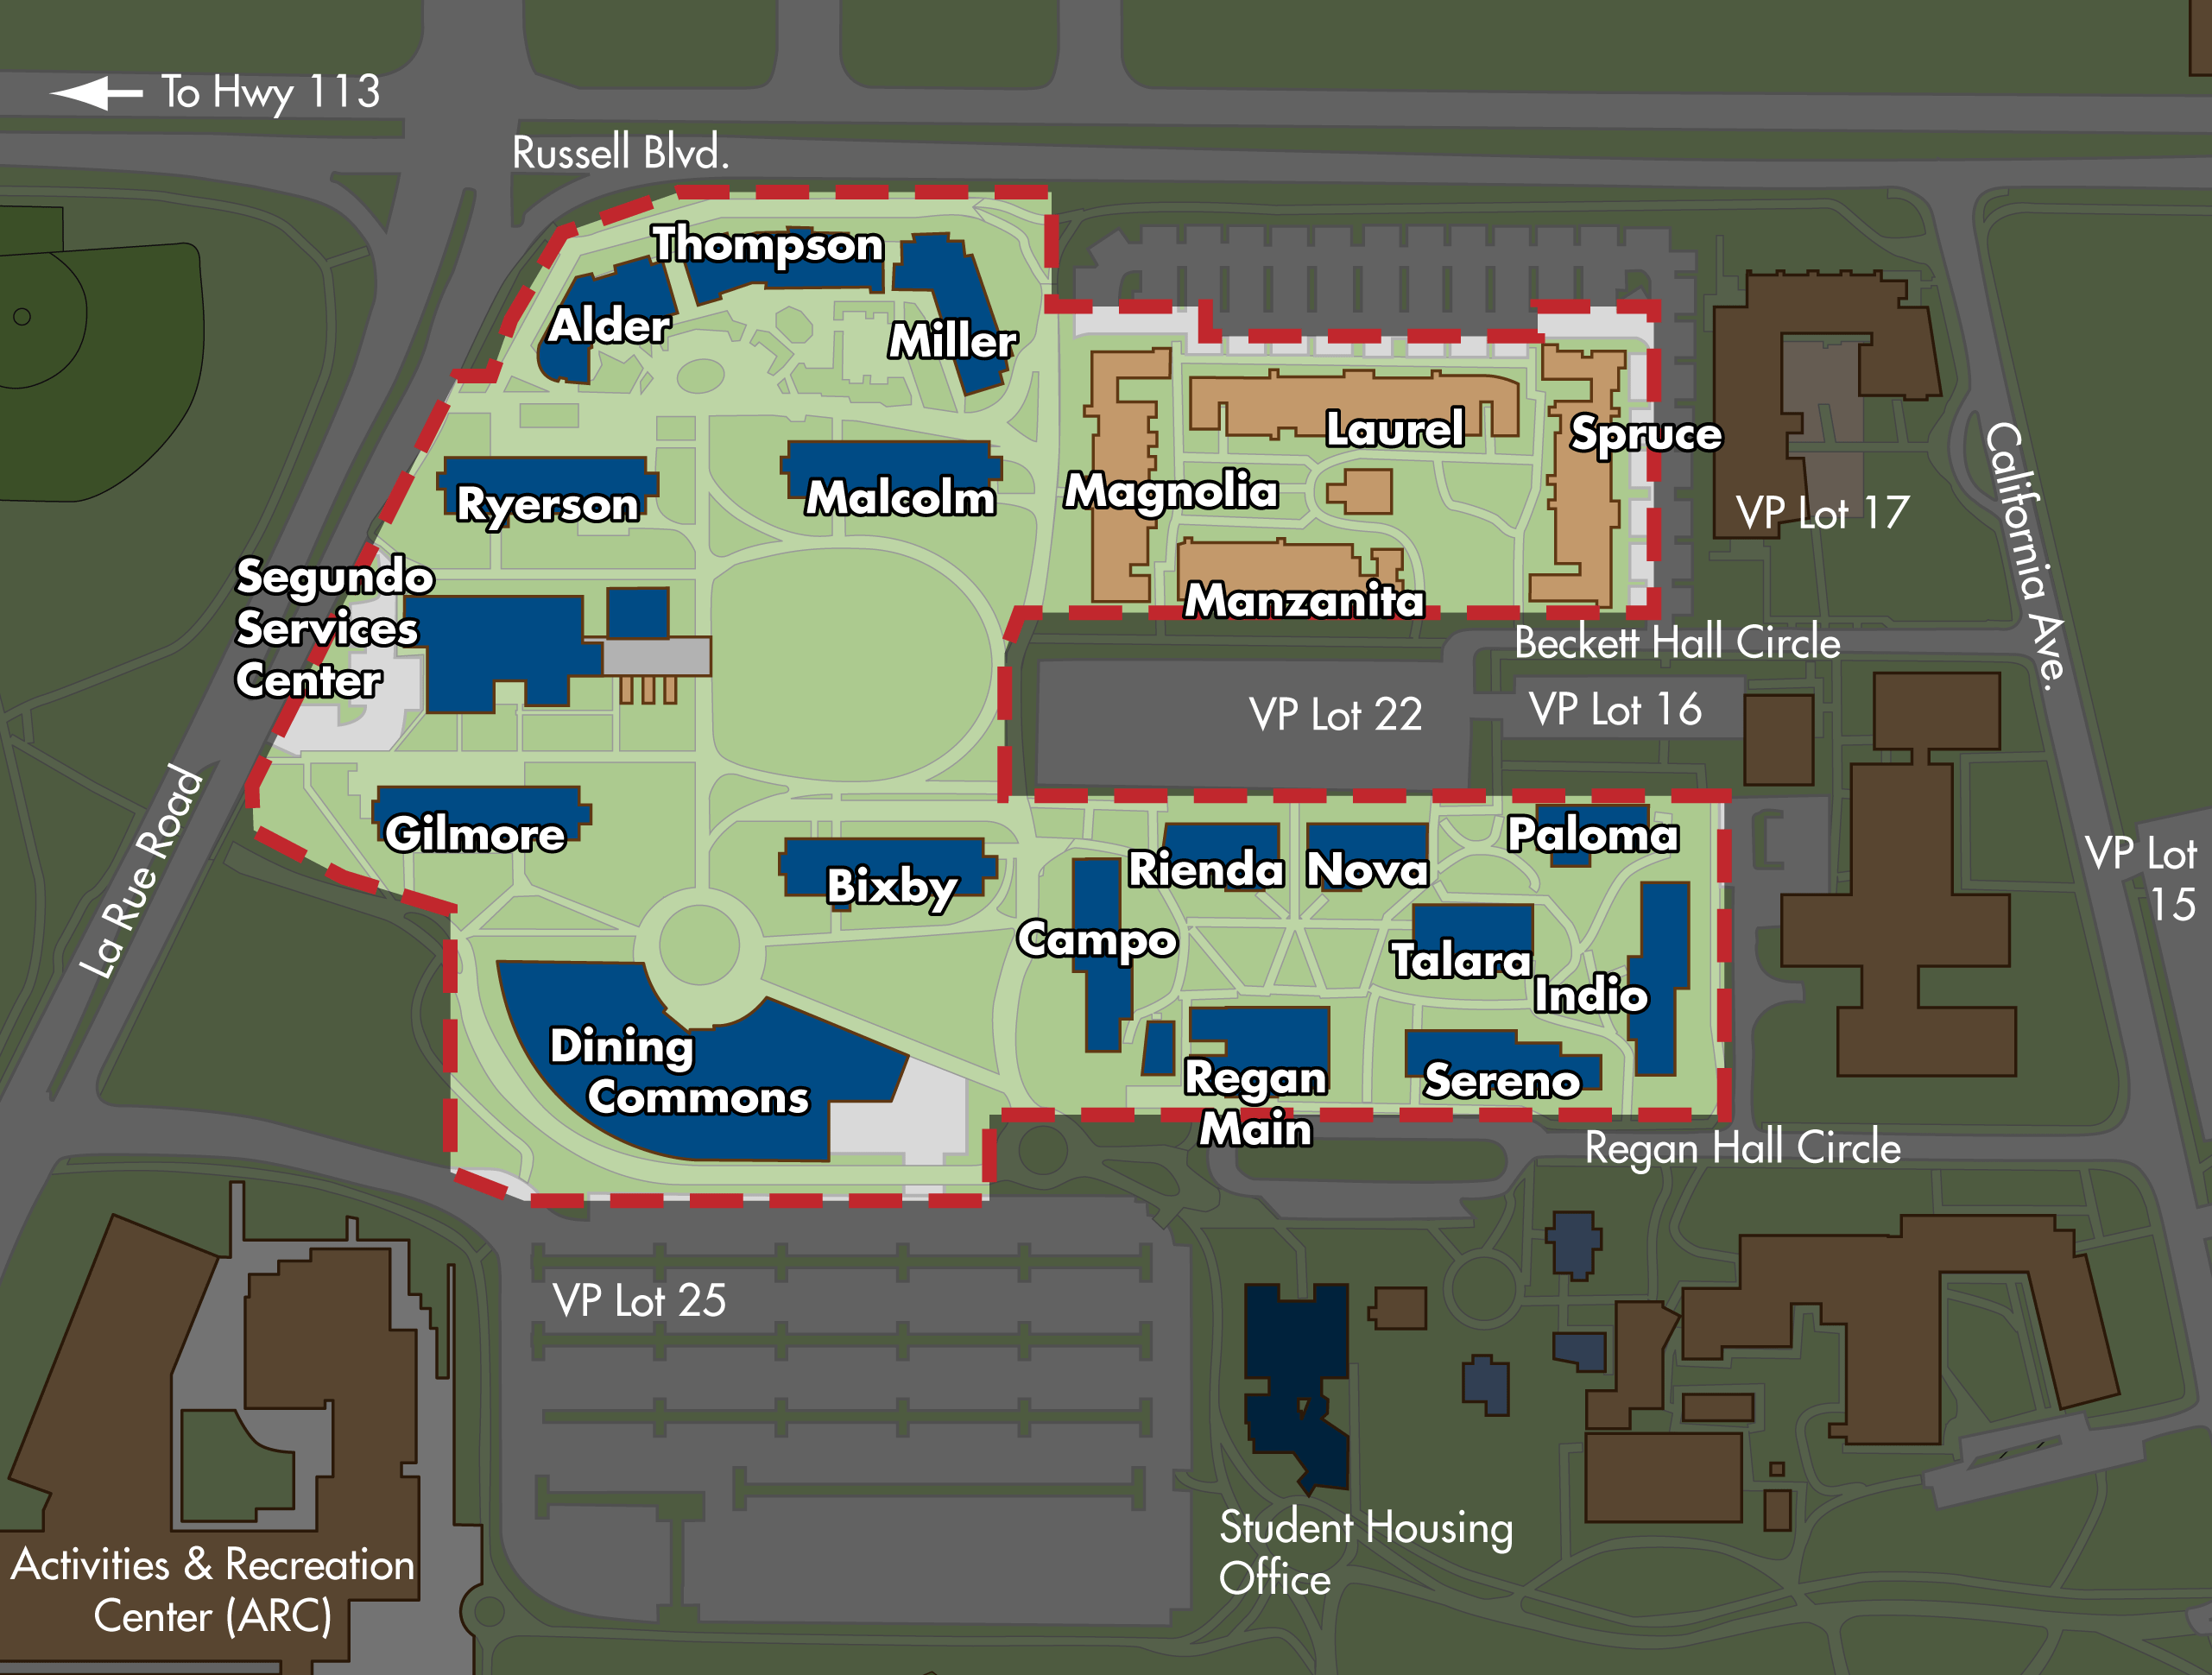 Map of the Segundo residence hall area